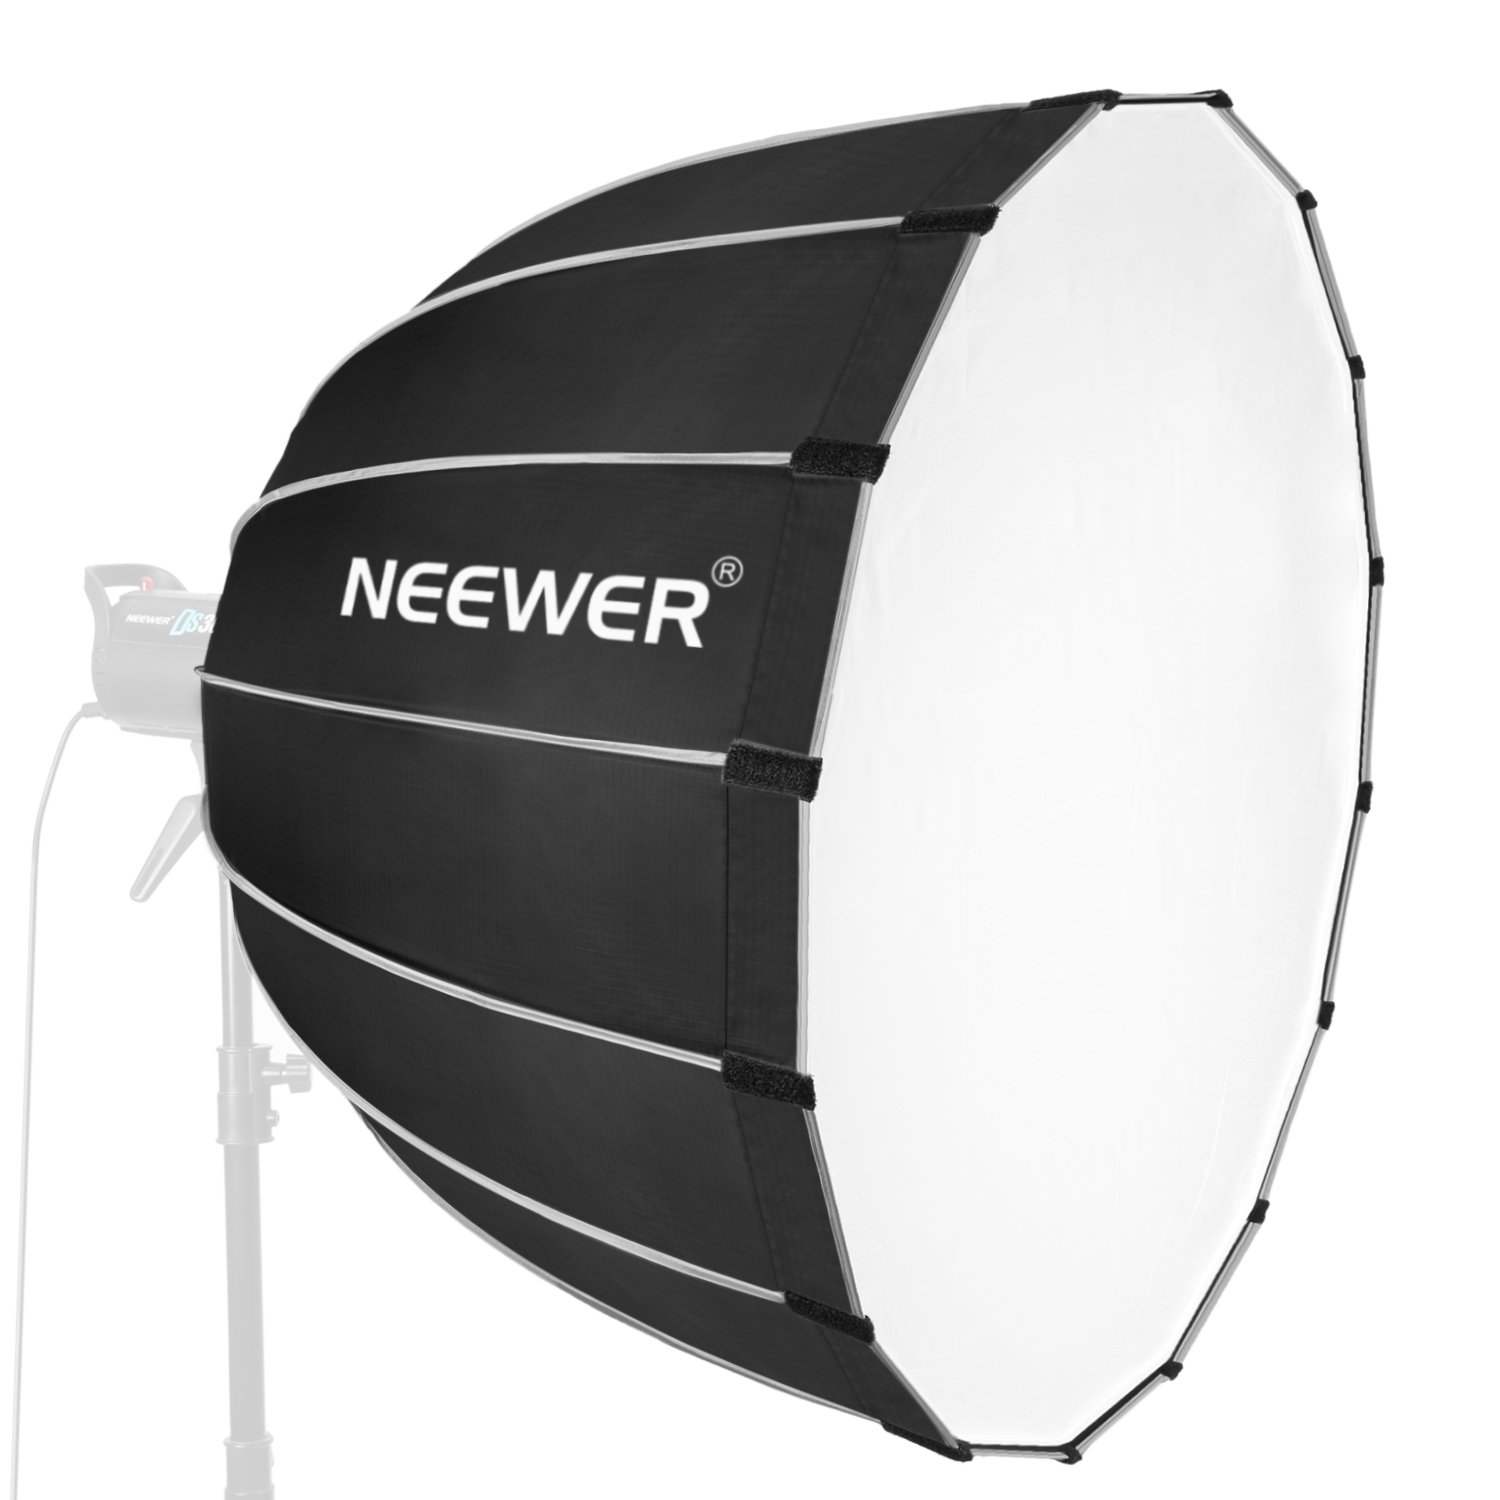 Neewer Hexadecagon Softbox 36 inches/90 Centimeters with Blue Rim and Bowens Mount, Portable and Quick Folding Softbox Diffuser for Photography Speedlites Flash Monolight and More 10090558